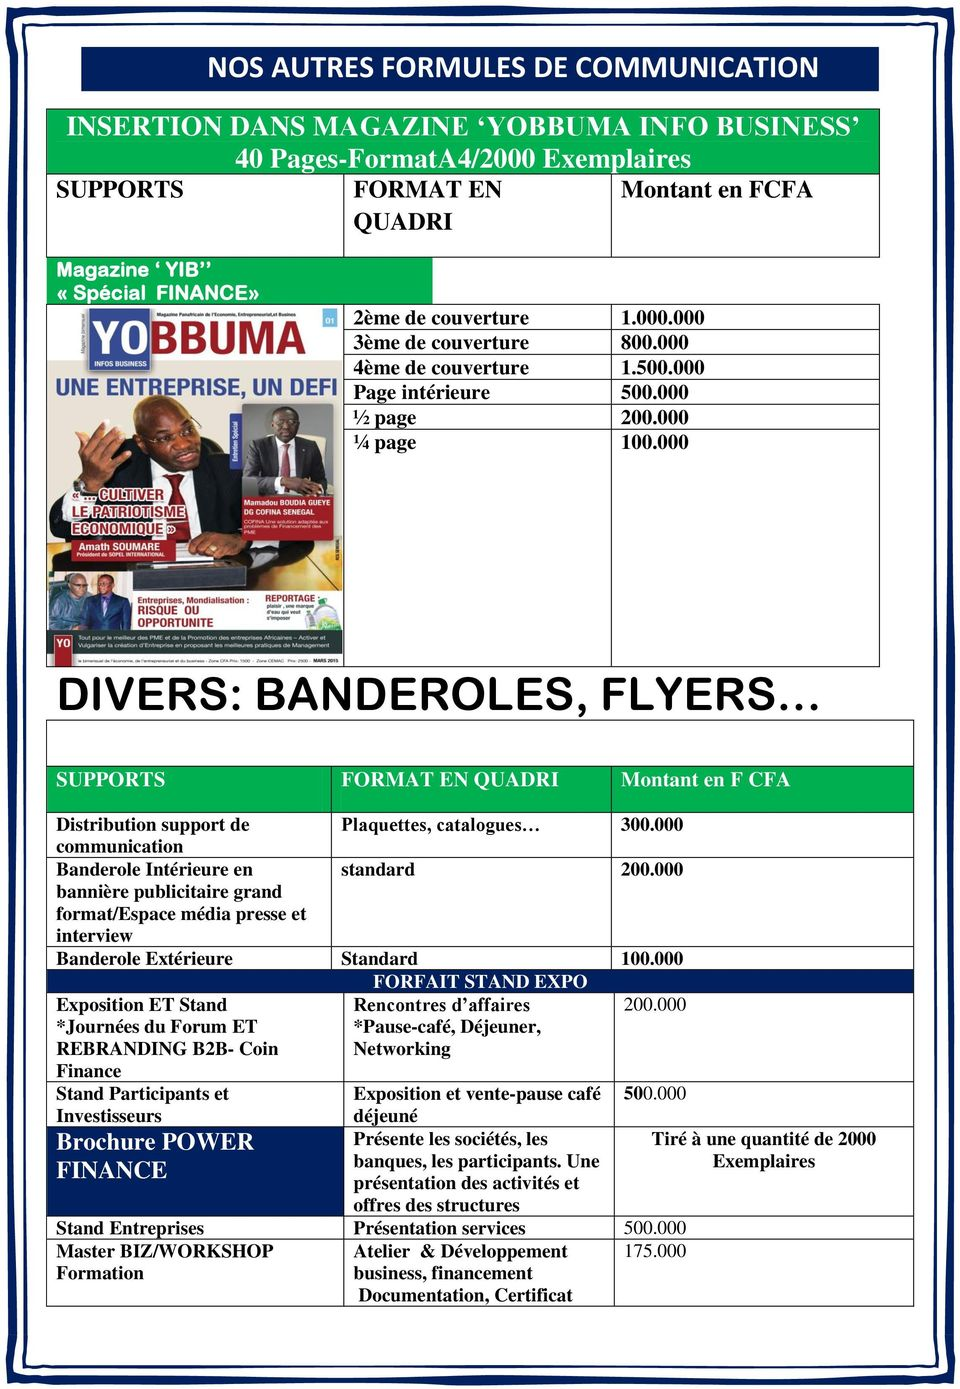 000 DIVERS: BANDEROLES, FLYERS SUPPORTS FORMAT EN QUADRI Montant en F CFA Distribution support de Plaquettes, catalogues 300.000 communication Banderole Intérieure en standard 200.